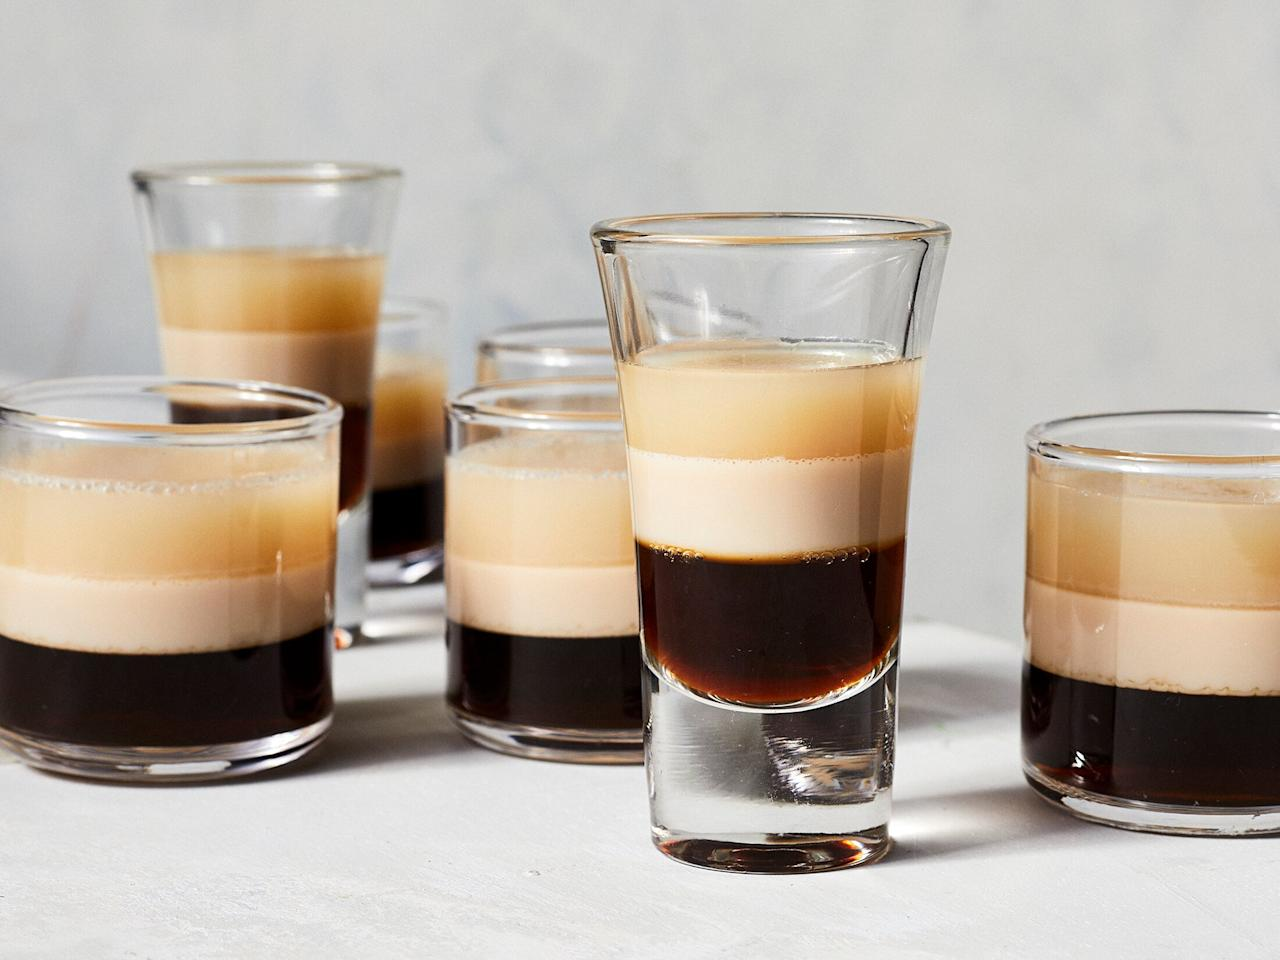 "<p>If you're looking for an easy way to get the St. Patrick's Day party started, look no further than these Irish coffee inspired Jell-O shots, featuring layers of Kahlúa-spiked coffee, Baileys Irish cream, and Irish whiskey. We also included a bit of pecan liqueur (because it's delicious), but feel free to replace it with an additional 1/4-cup Baileys. </p> <p><a href=""https://www.myrecipes.com/recipe/Irish-coffee-jello-shots"">Irish Coffee Jell-O Shots Recipe</a></p>"